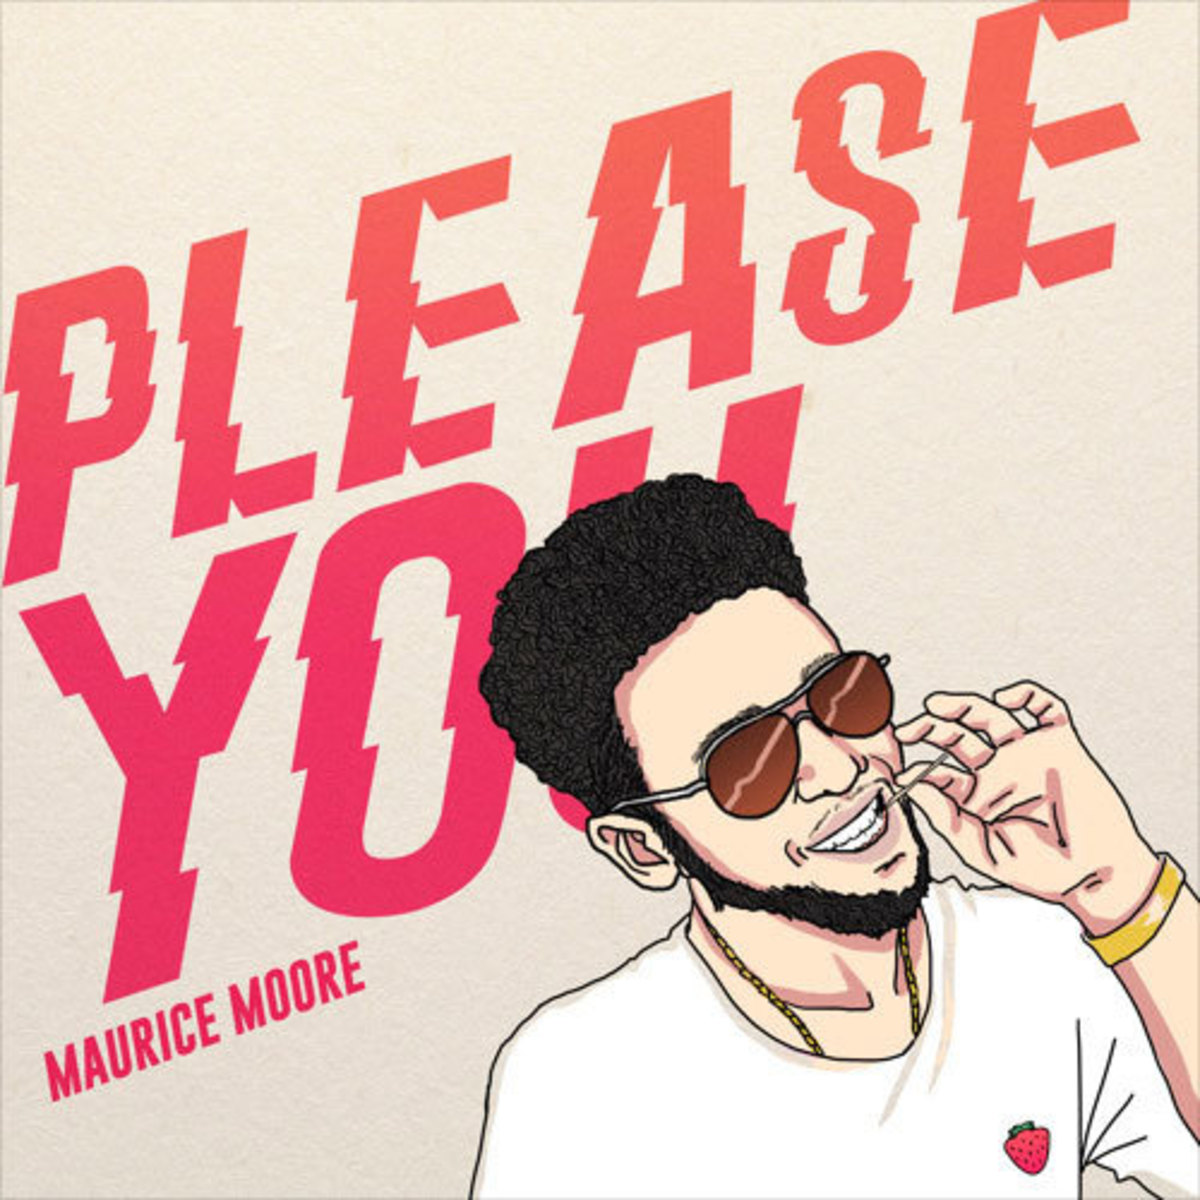 maurice-moore-please-you.jpg